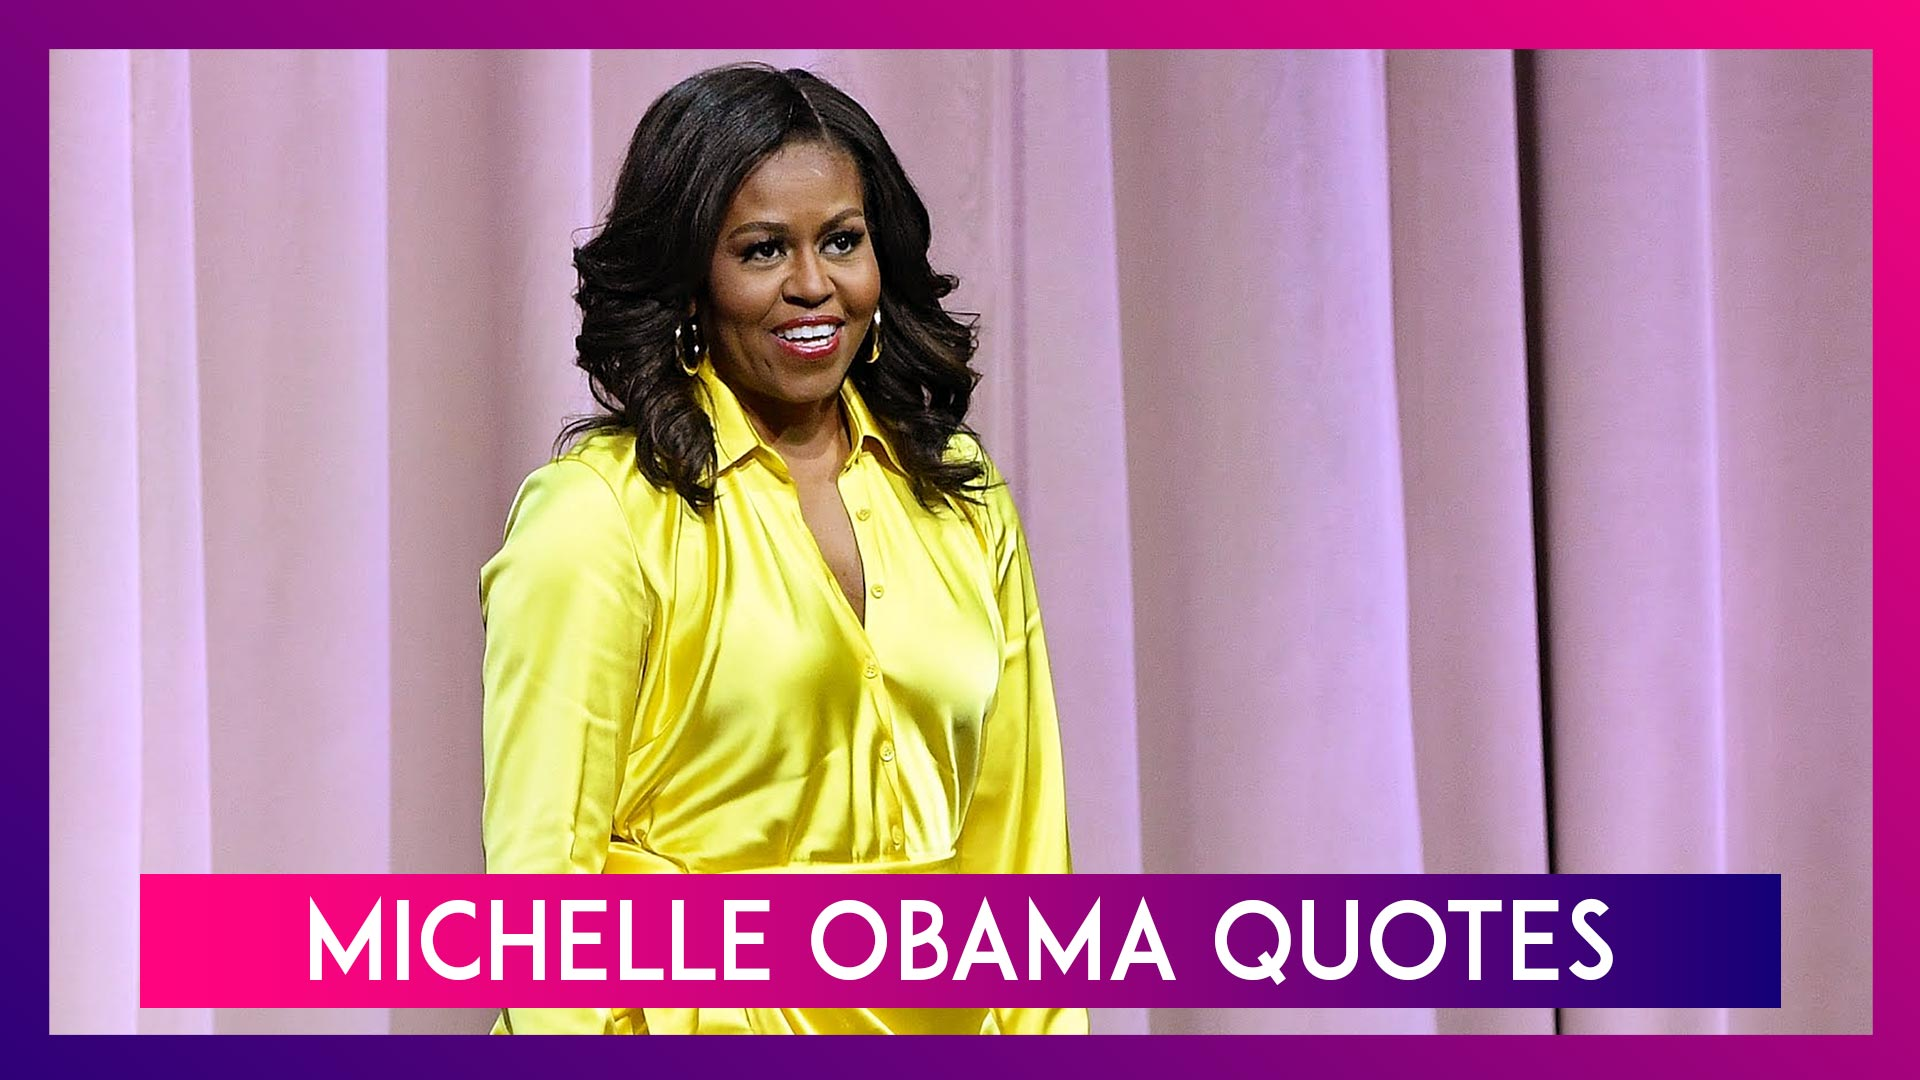 Michelle Obama 56th Birthday: Popular Quotes By Former FLOTUS That Will Motivate You & Others